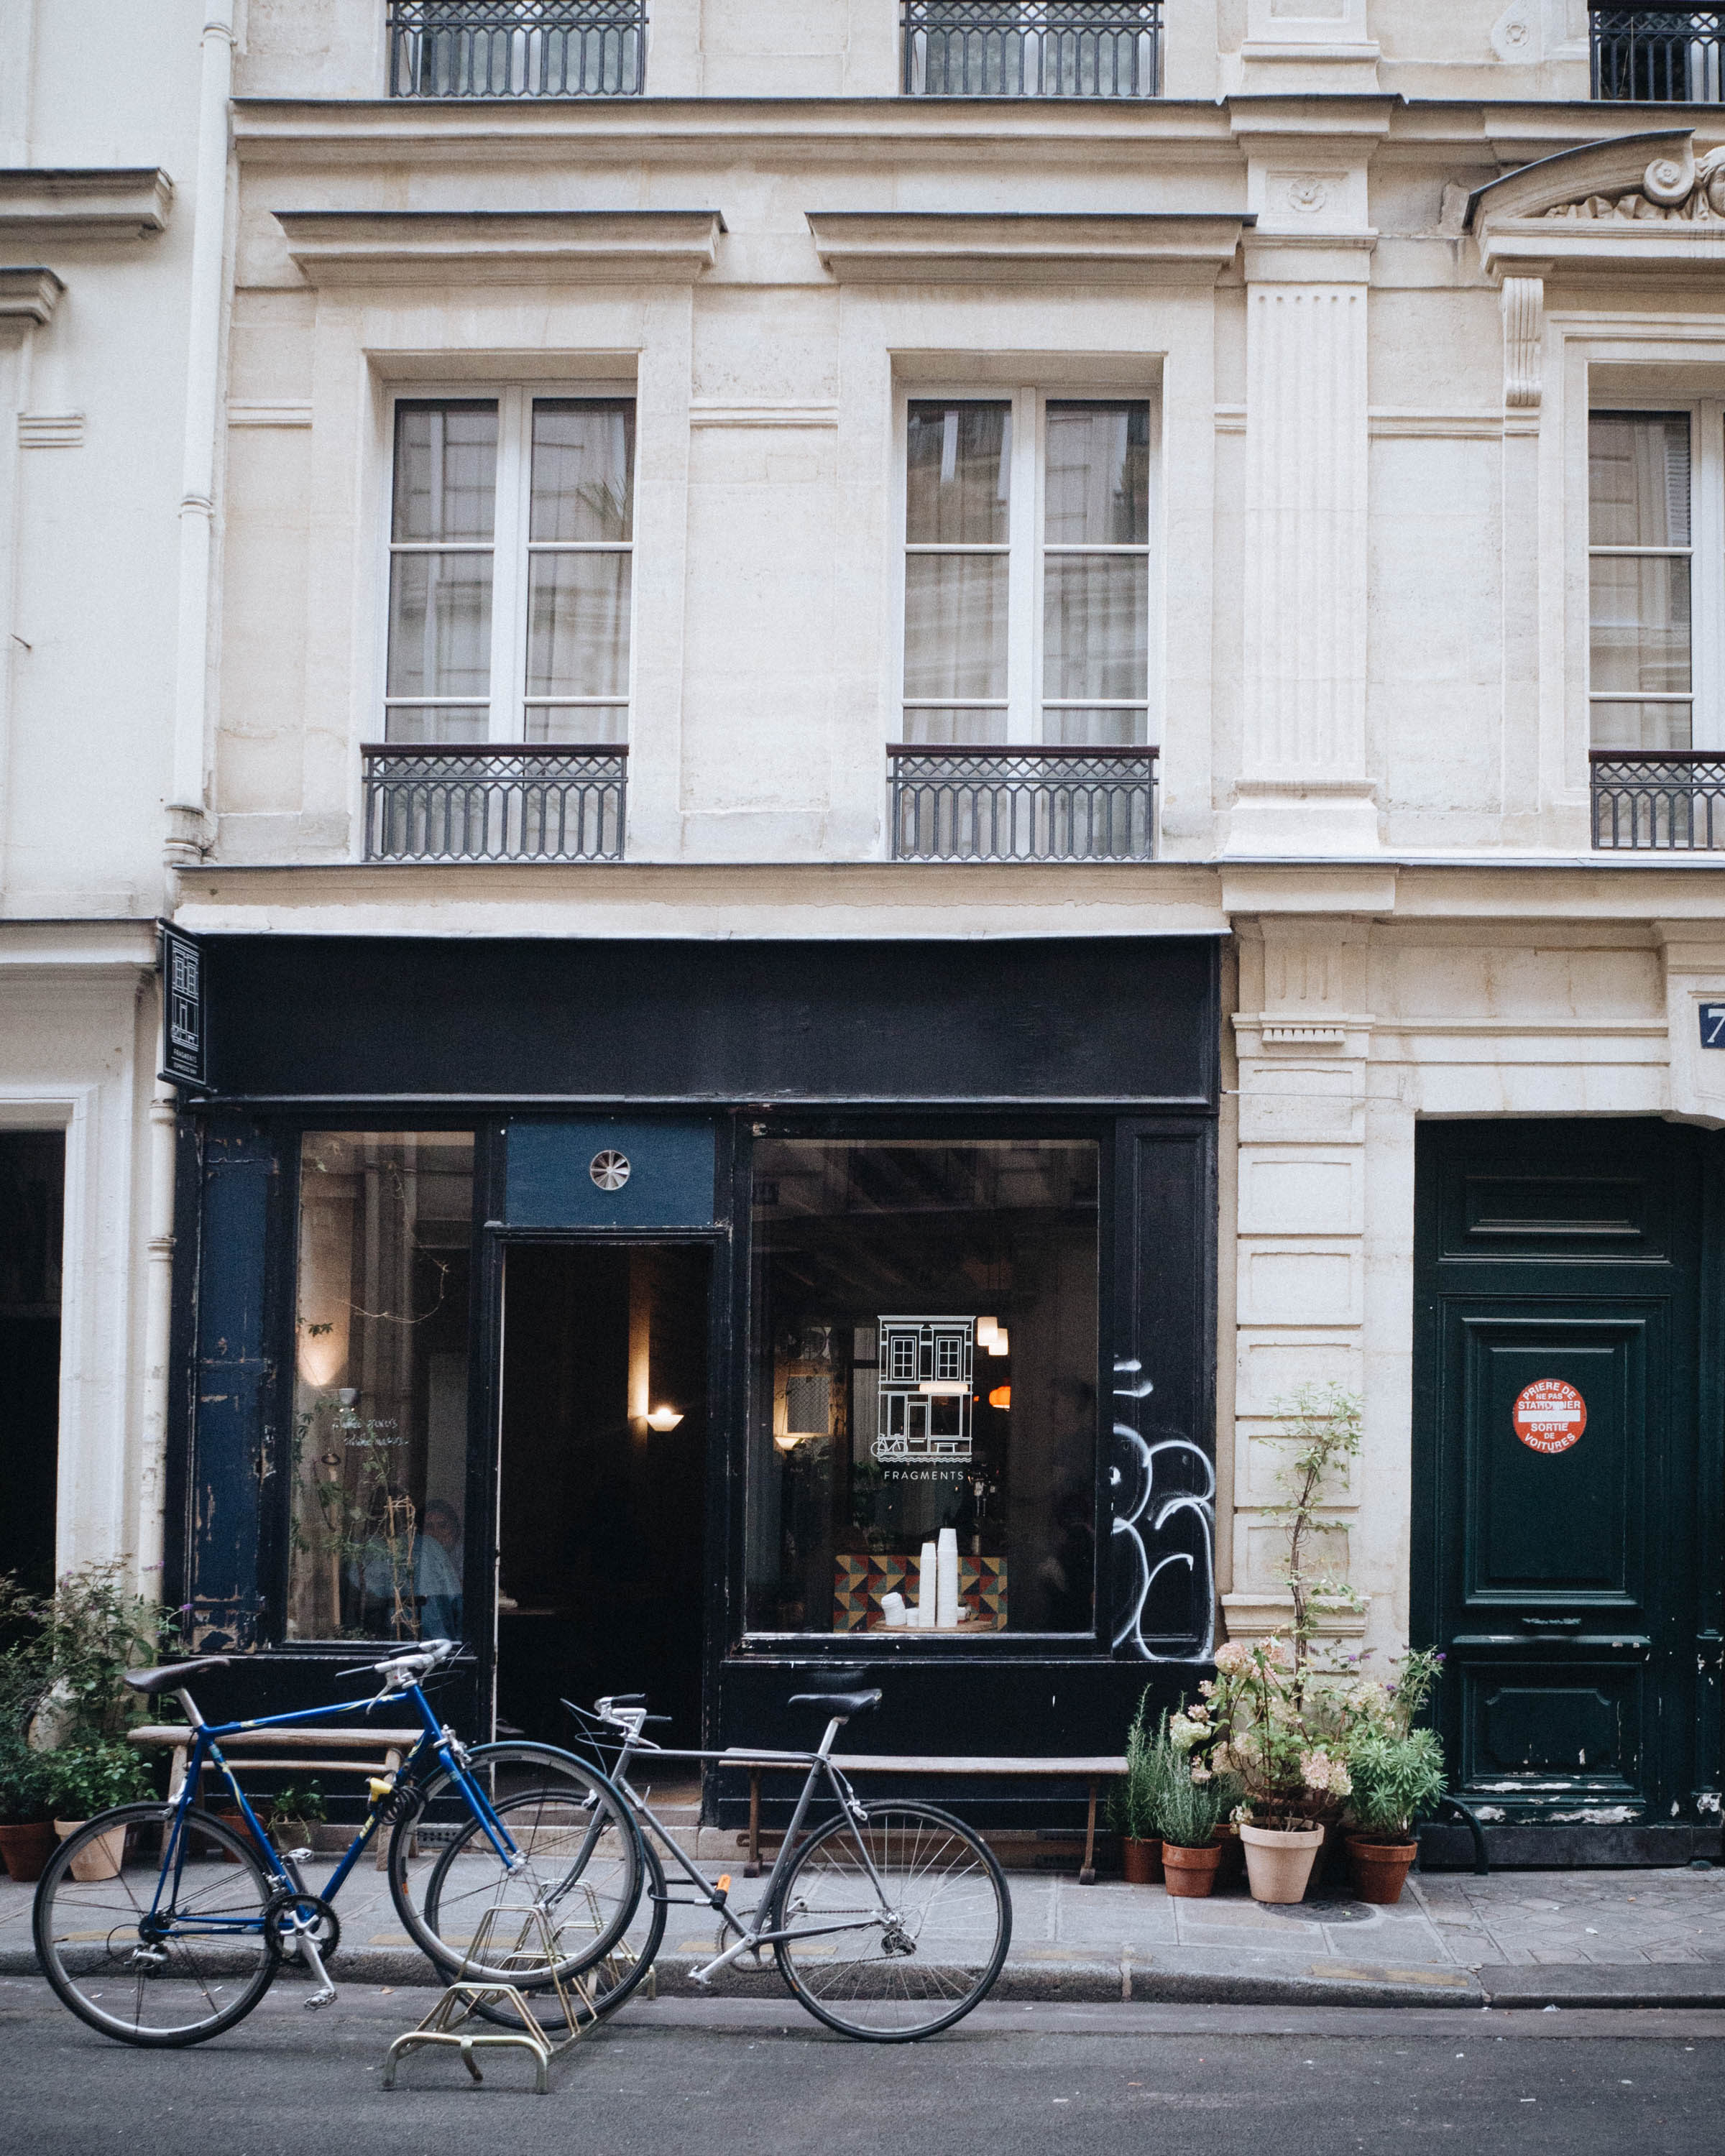 Littlegreenshed Paris Photo journal